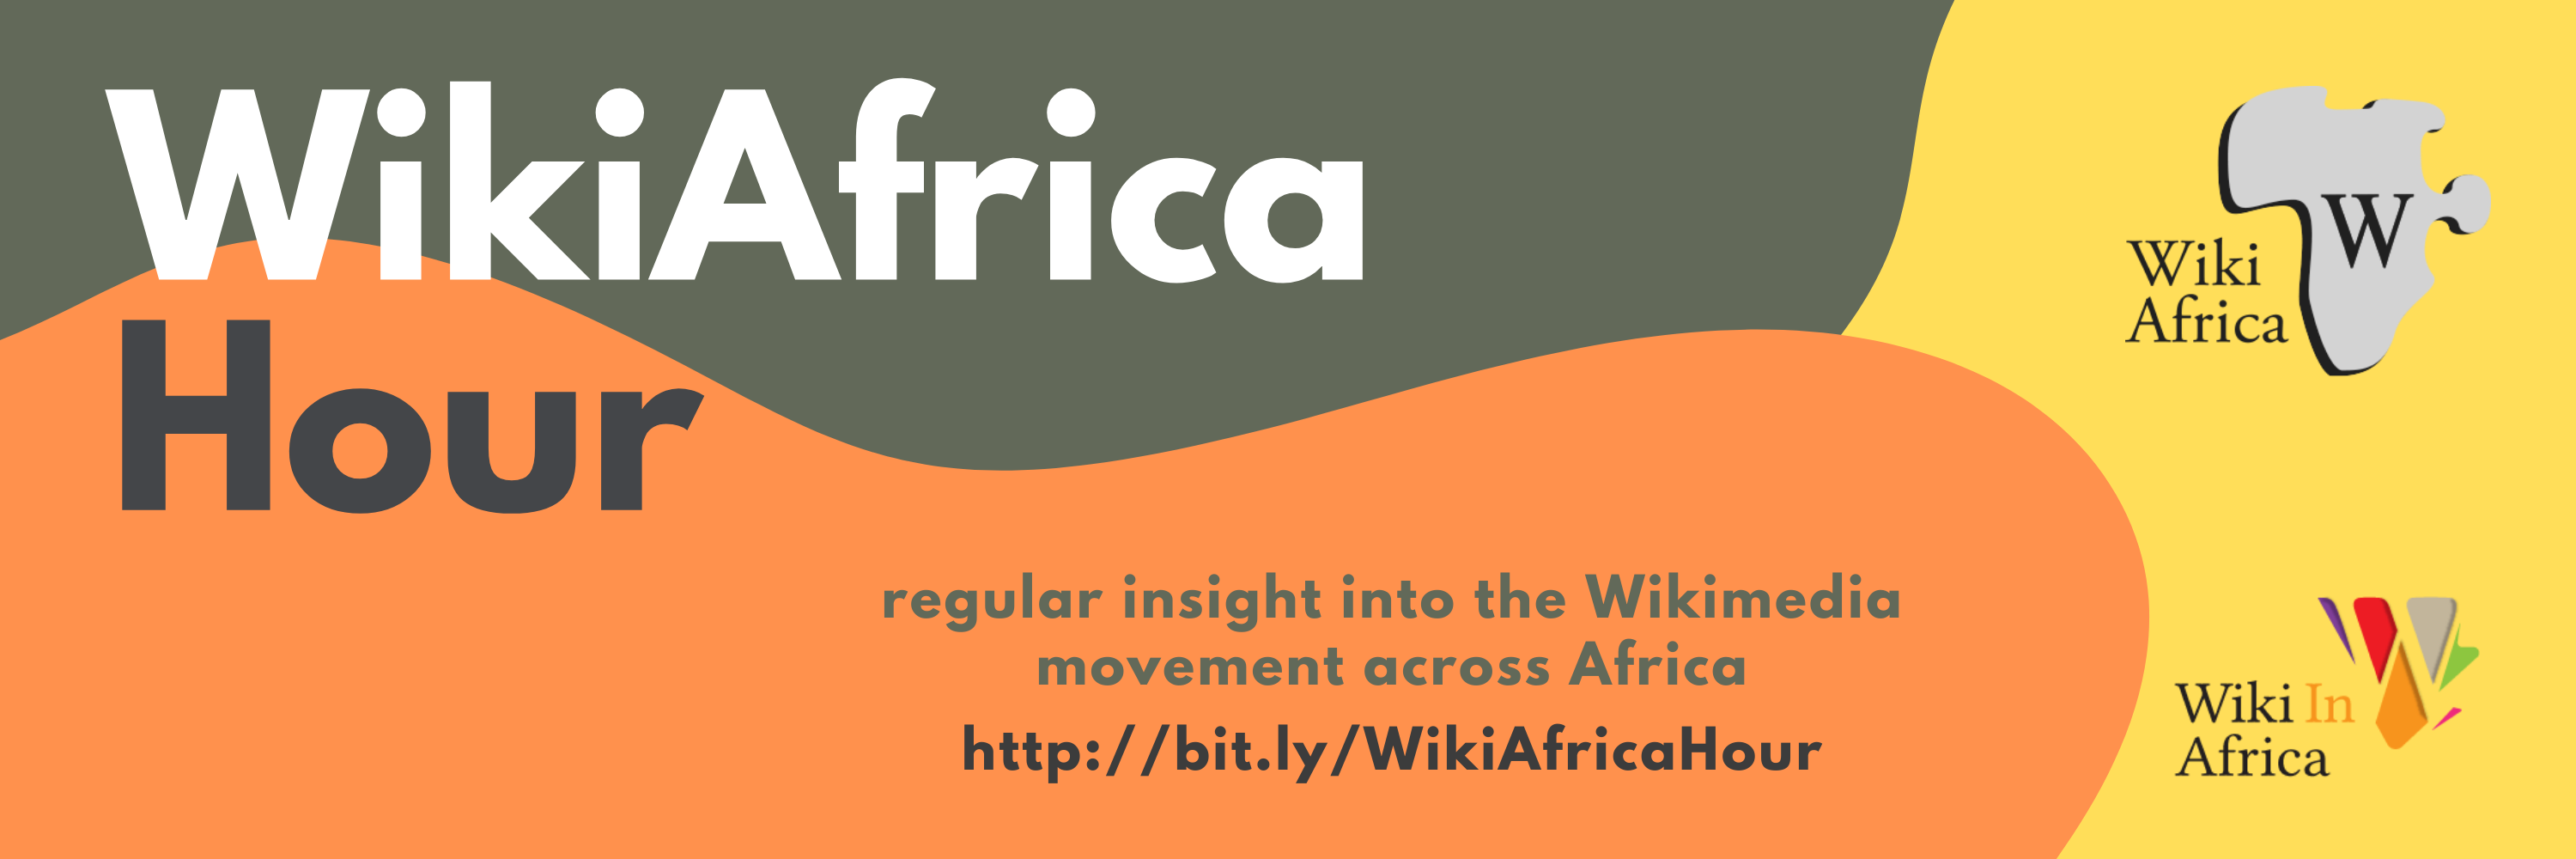 NEW : WikiAfrica Hour launches with interview with Katherine Maher